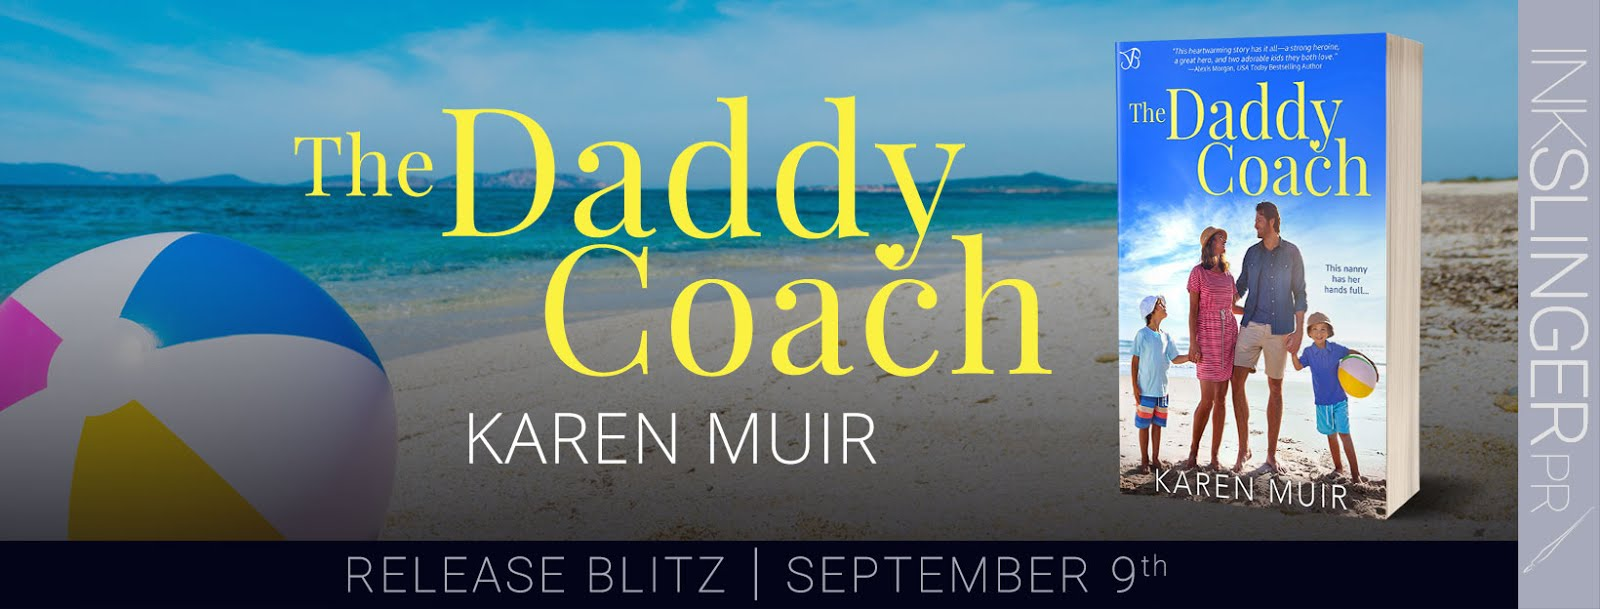 The Daddy Coach Release Blitz & Giveaway